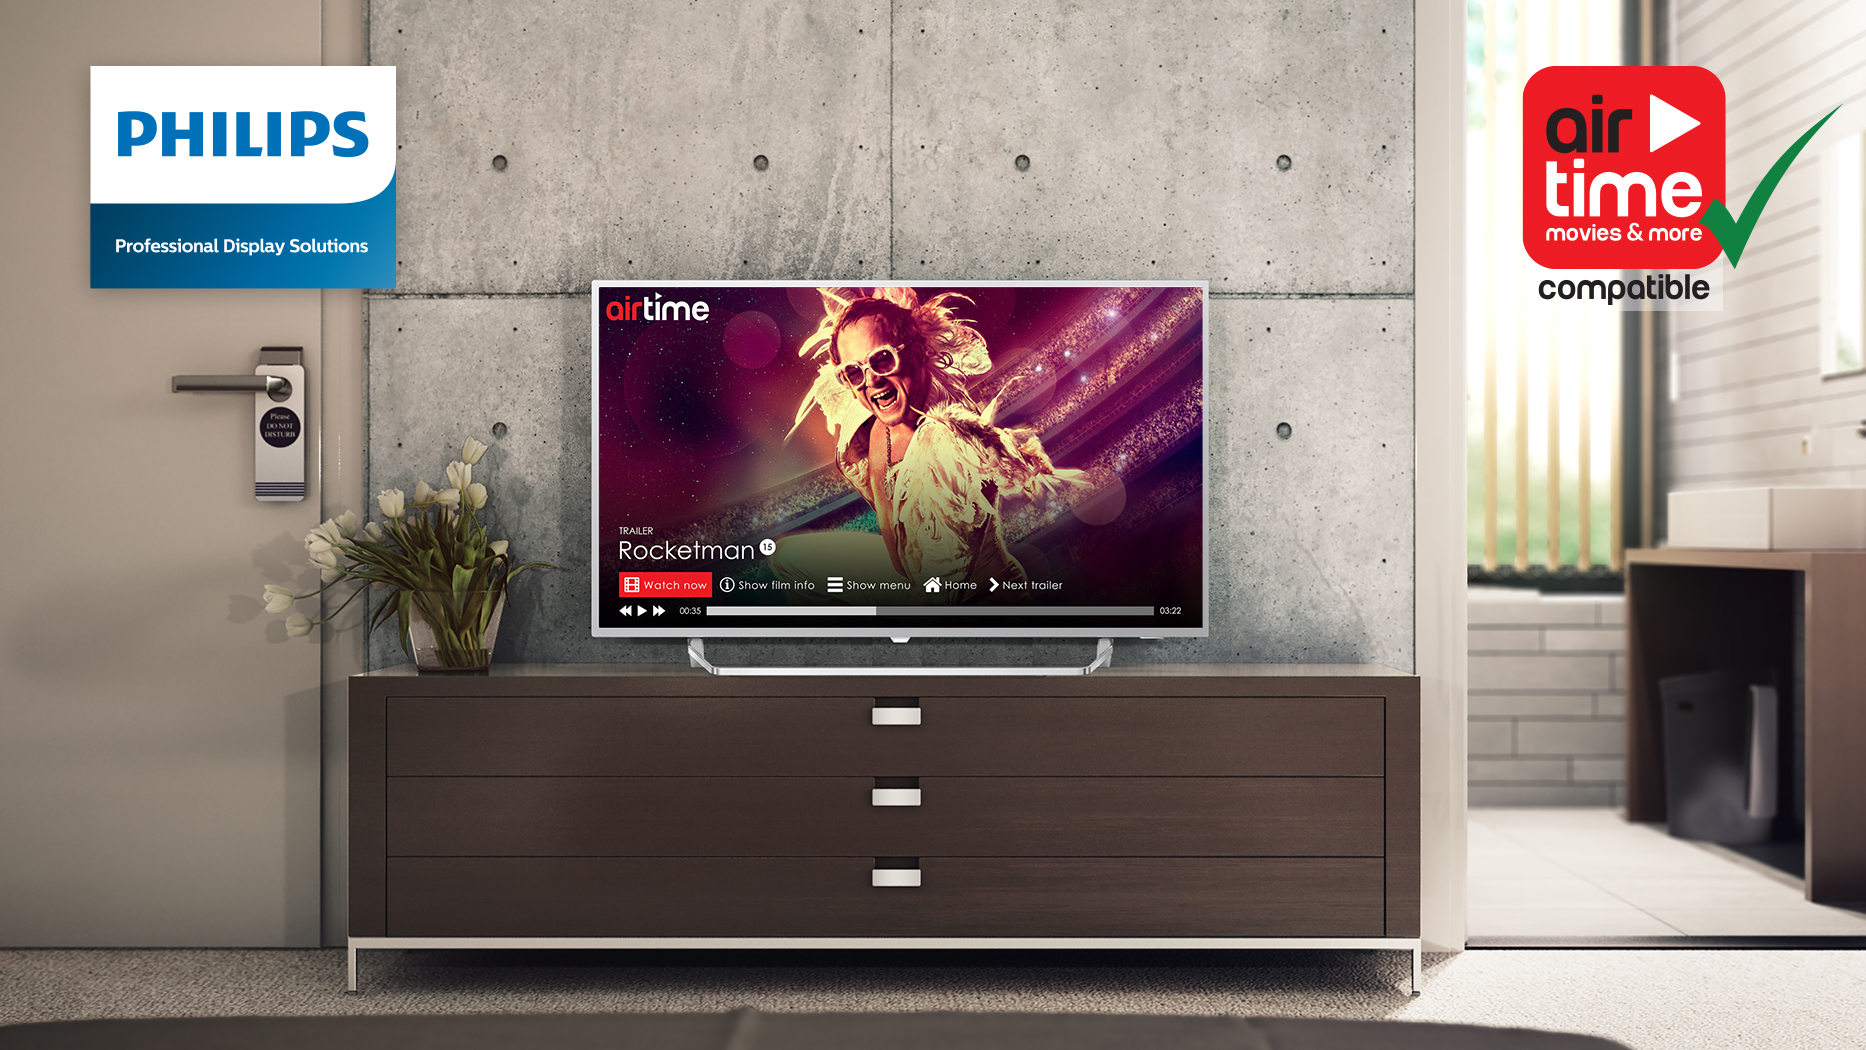 Philips Display Solutions